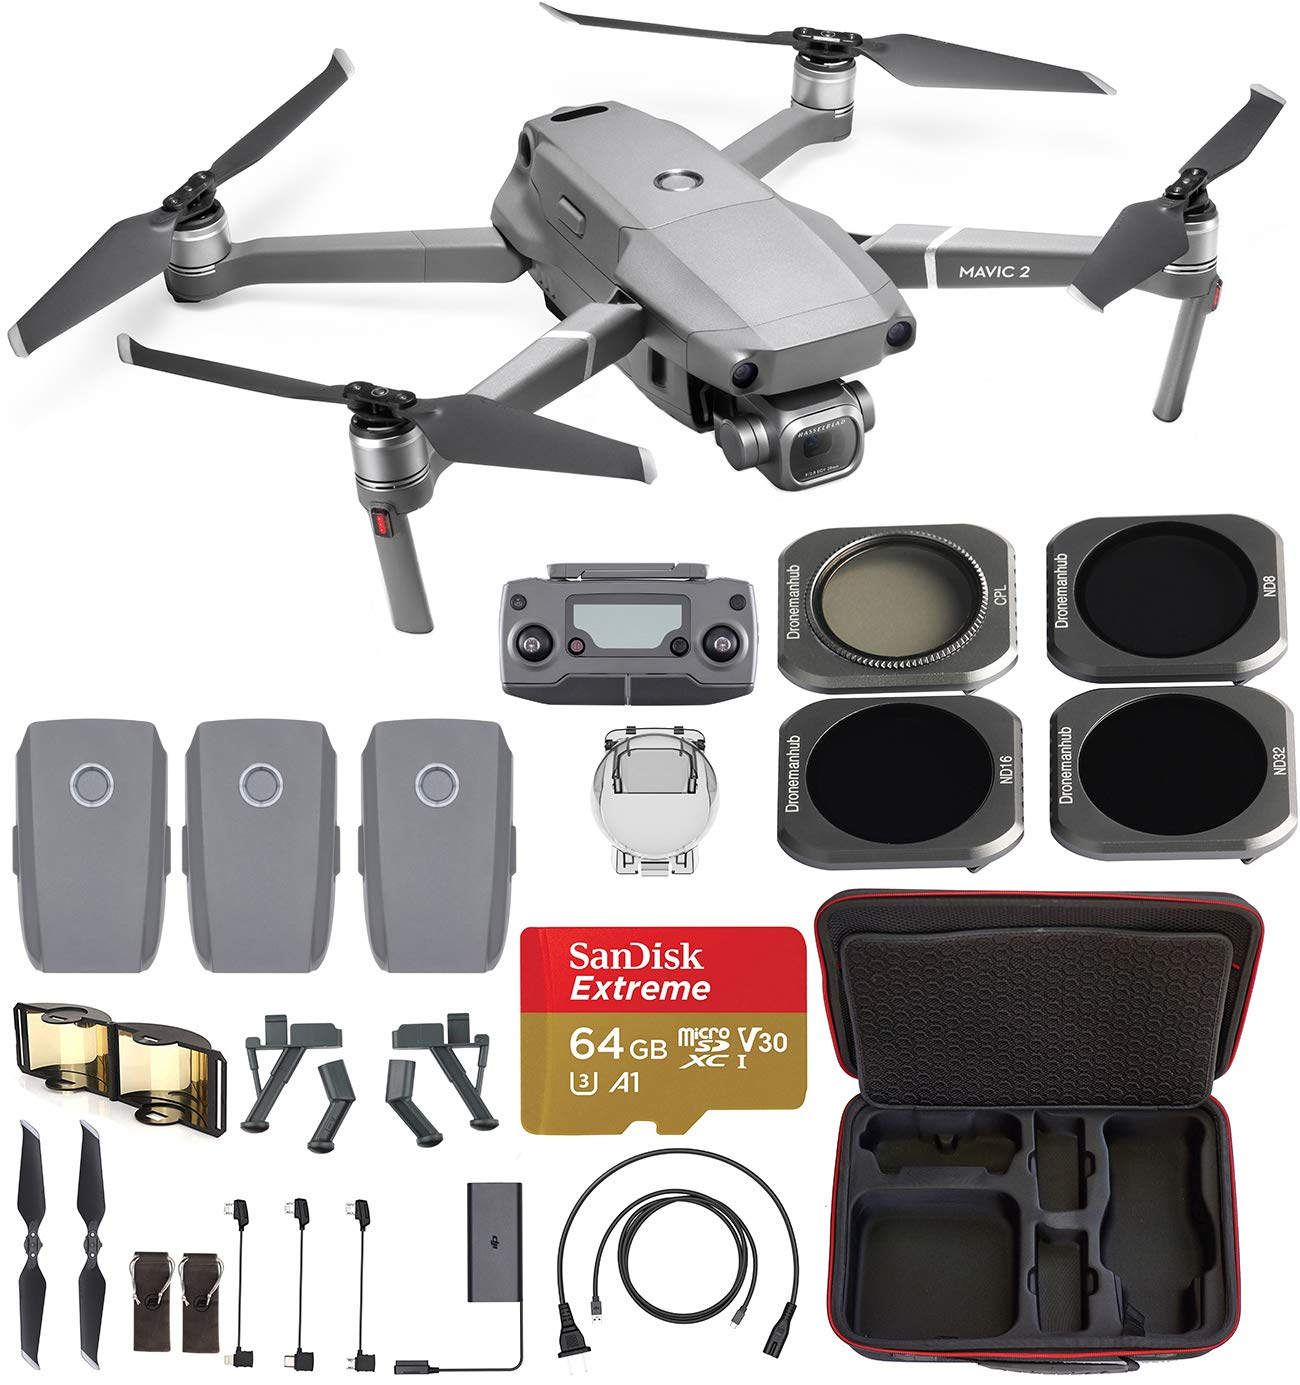 DJI Mavic 2 Pro with Hard Professional Case and ND Filters 2Batteries